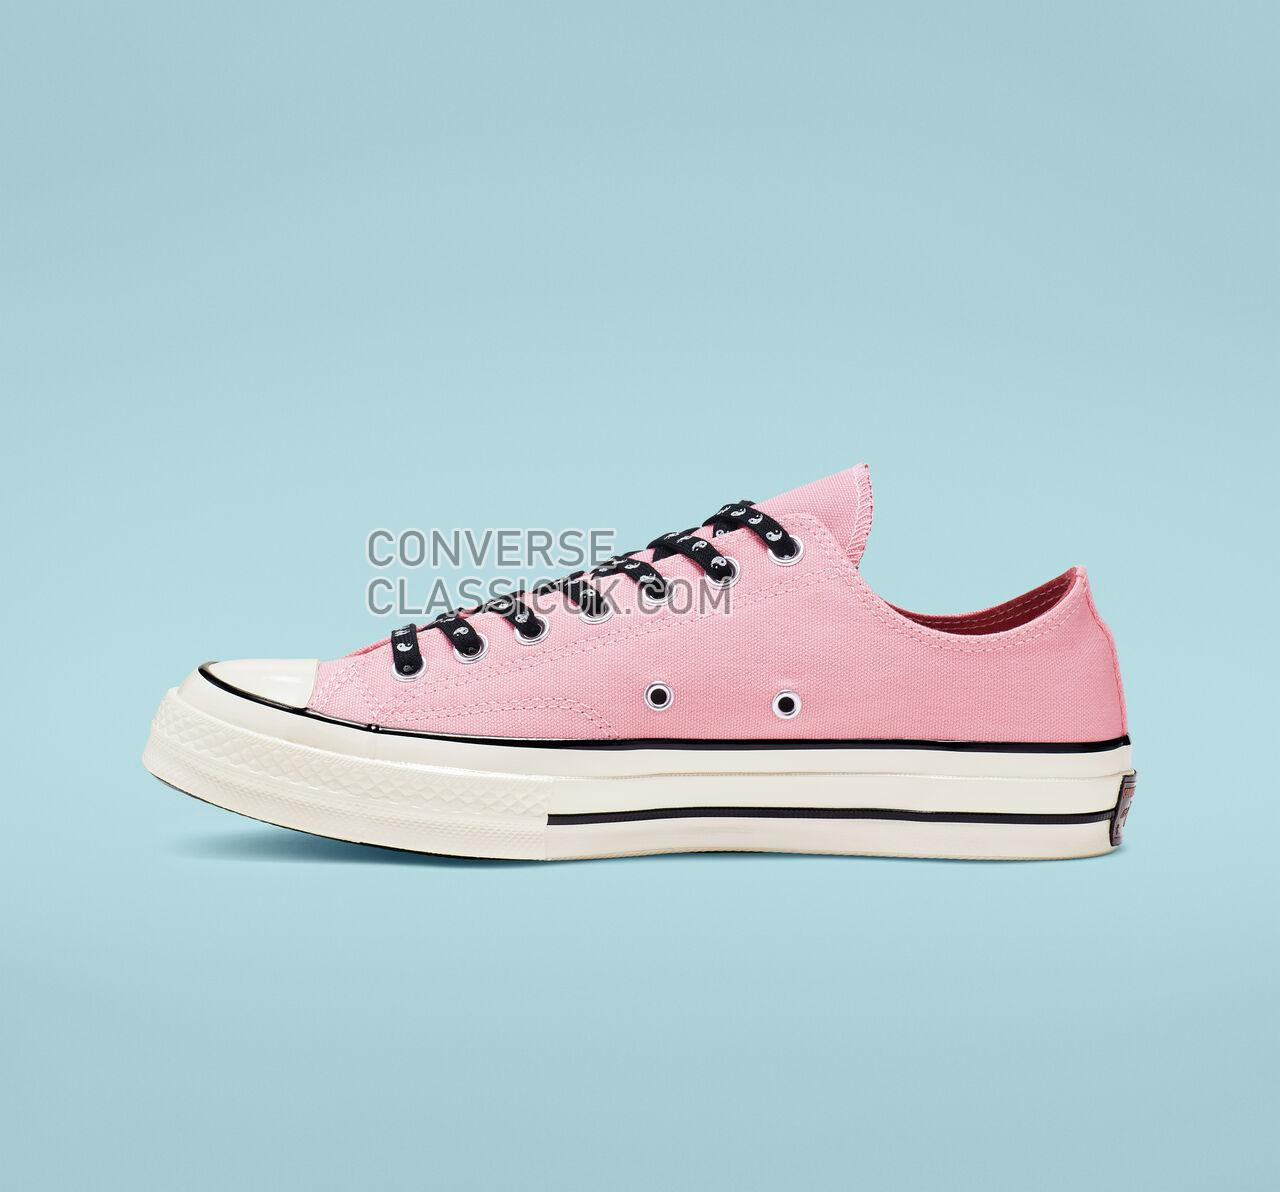 Converse Chuck 70 Psy-Kicks Low Top Mens Womens Unisex 164212C Bleached Coral/Dusty Peach Shoes